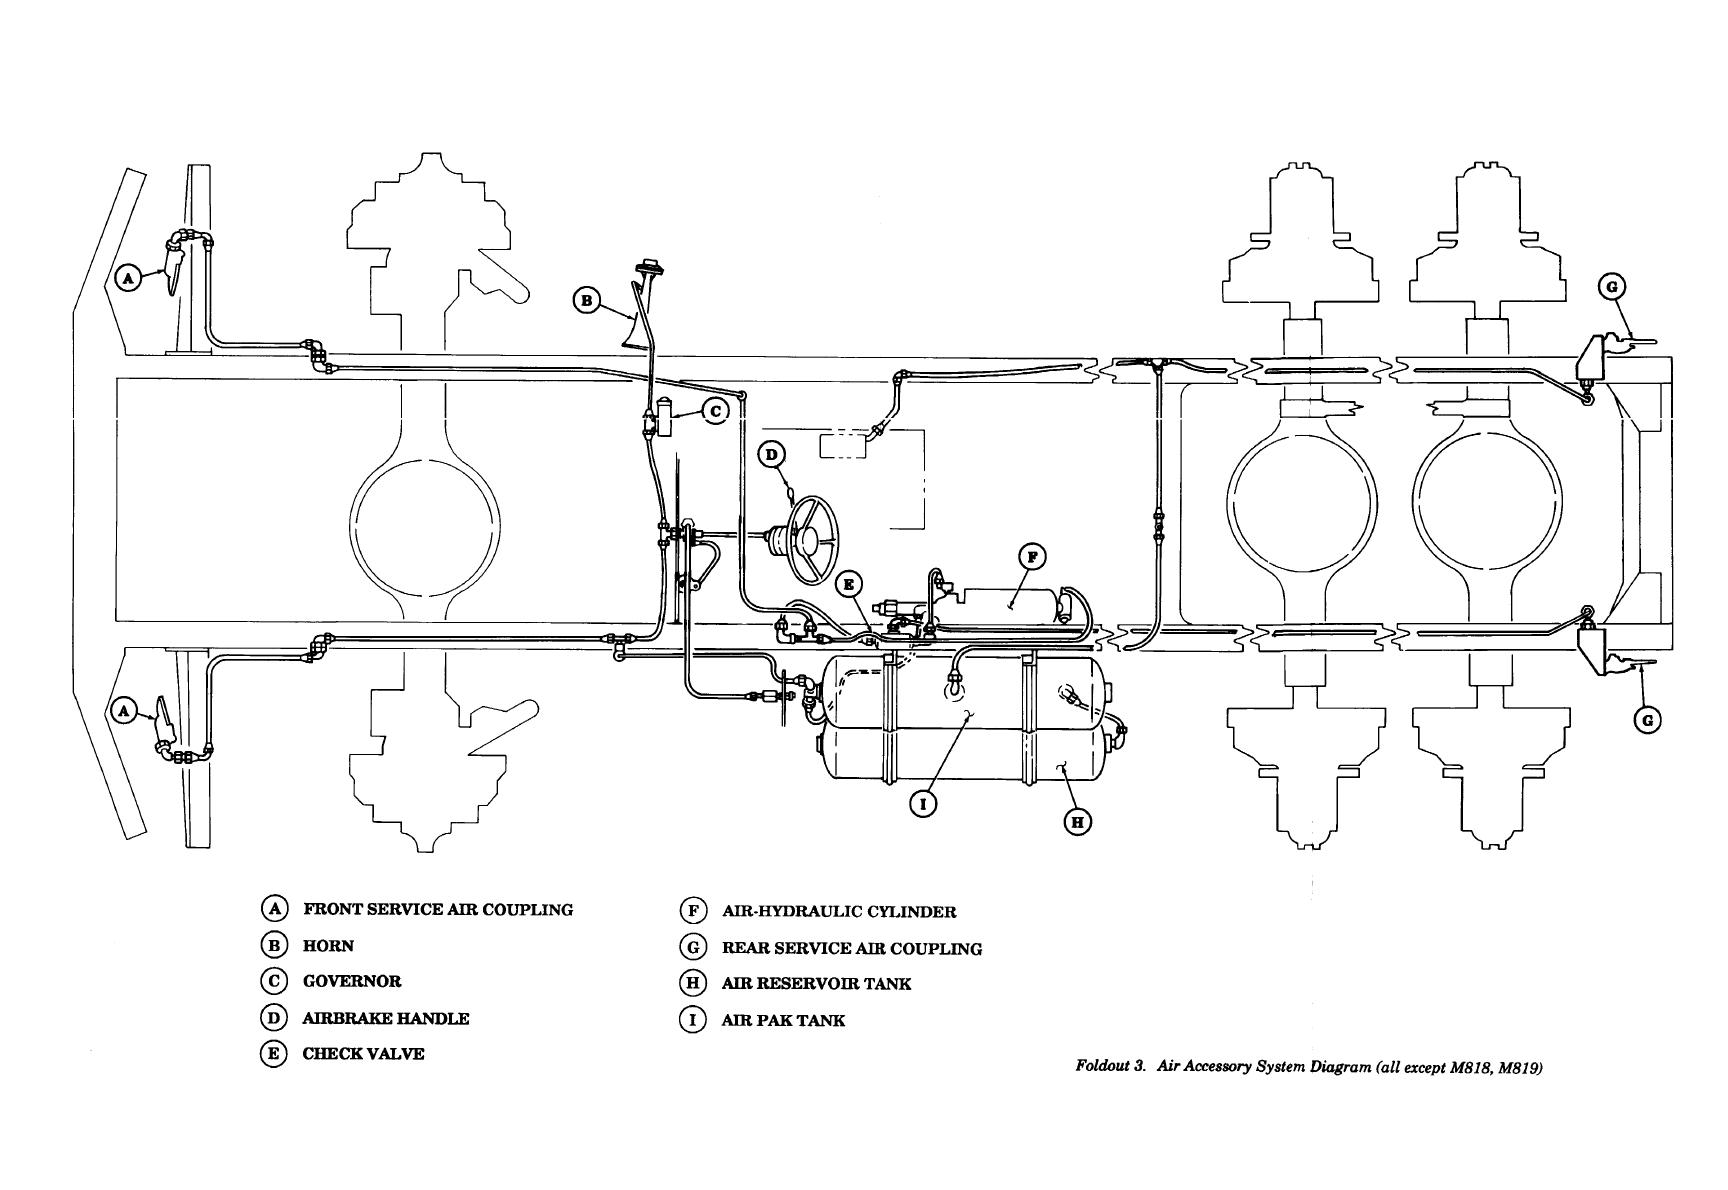 Air Brake System Diagram http://trucks5ton.tpub.com/TM-9-2320-260-20/TM-9-2320-260-201330.htm